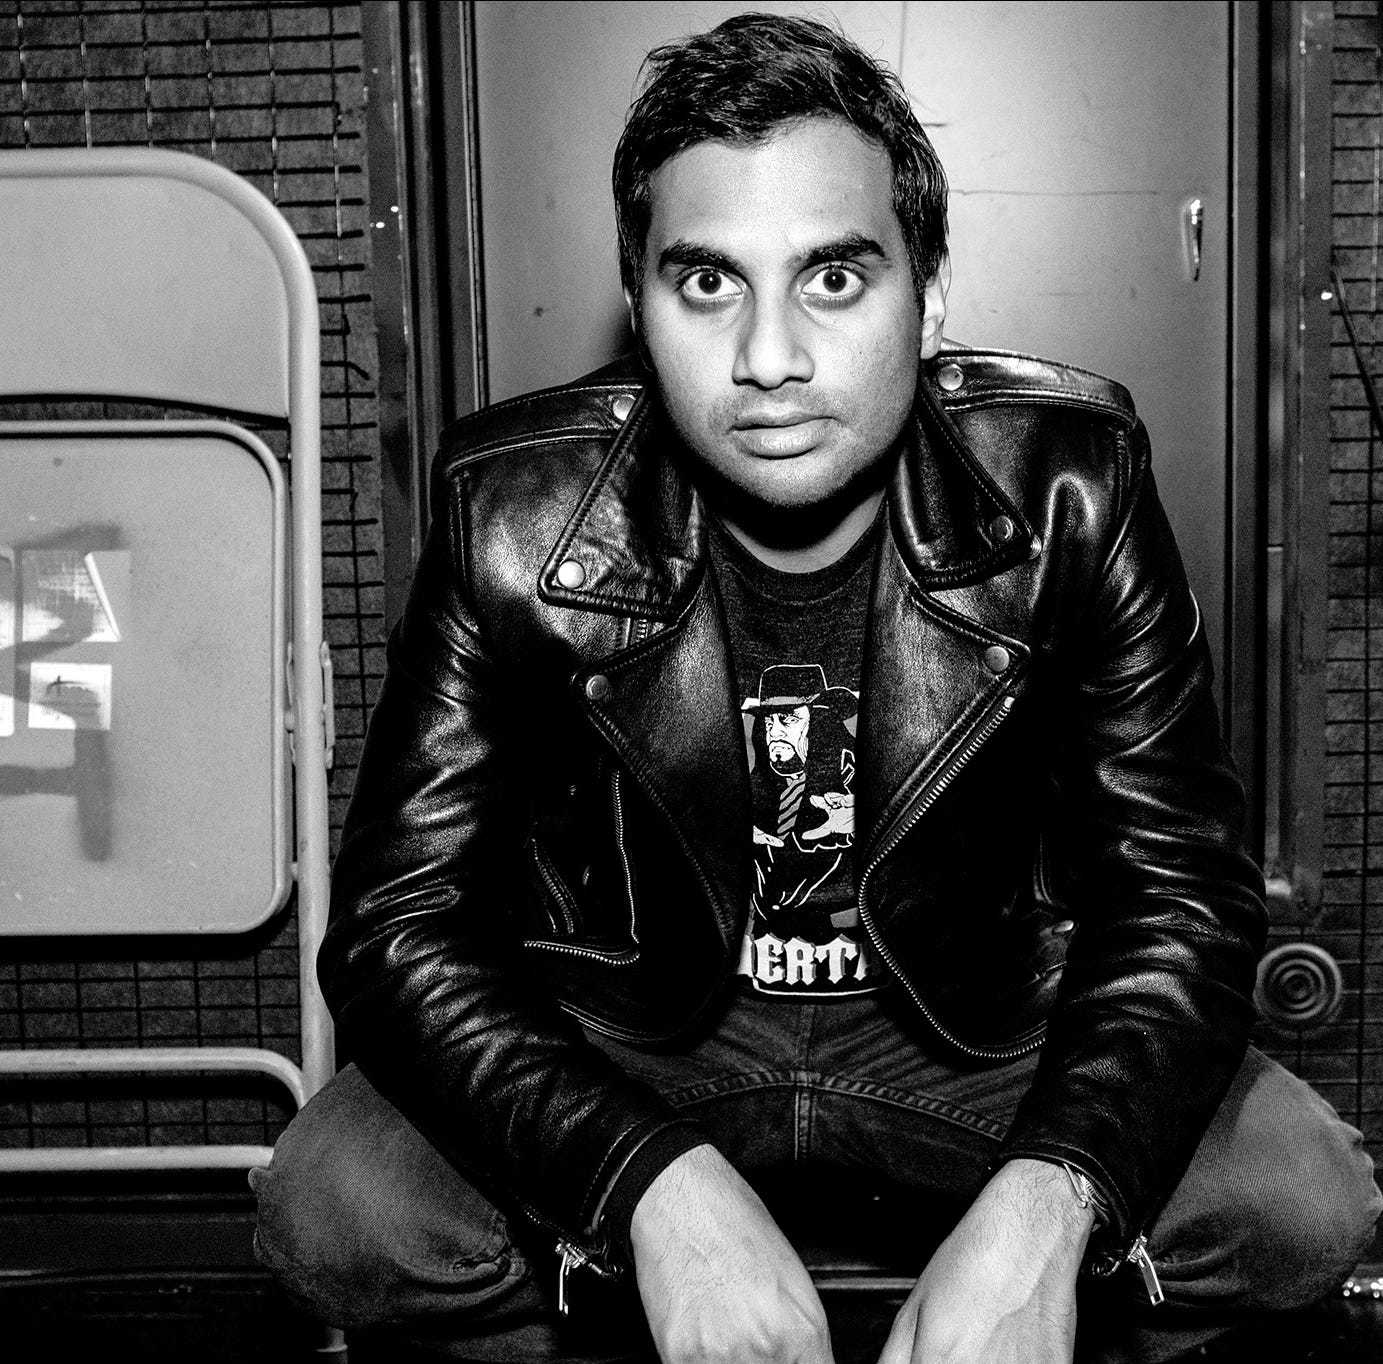 Aziz Ansari brings 'Road to Nowhere' to Oxnard performing arts center